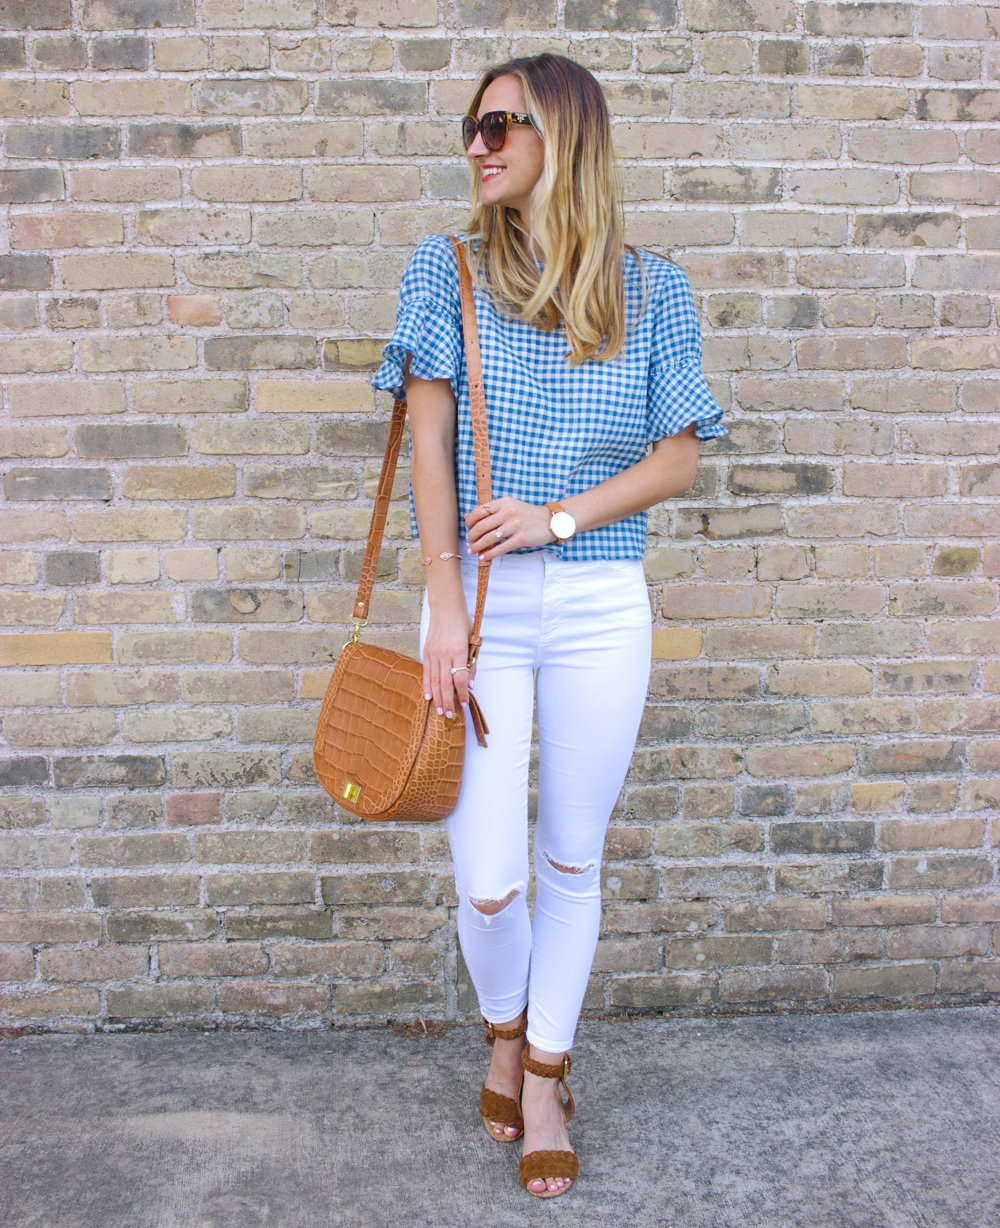 livvyland-blog-olivia-watson-goodnight-macaroon-ruffle-blue-gingham-top-white-topshop-jamie-skinny-jeans-austin-texas-fashion-blogger-4